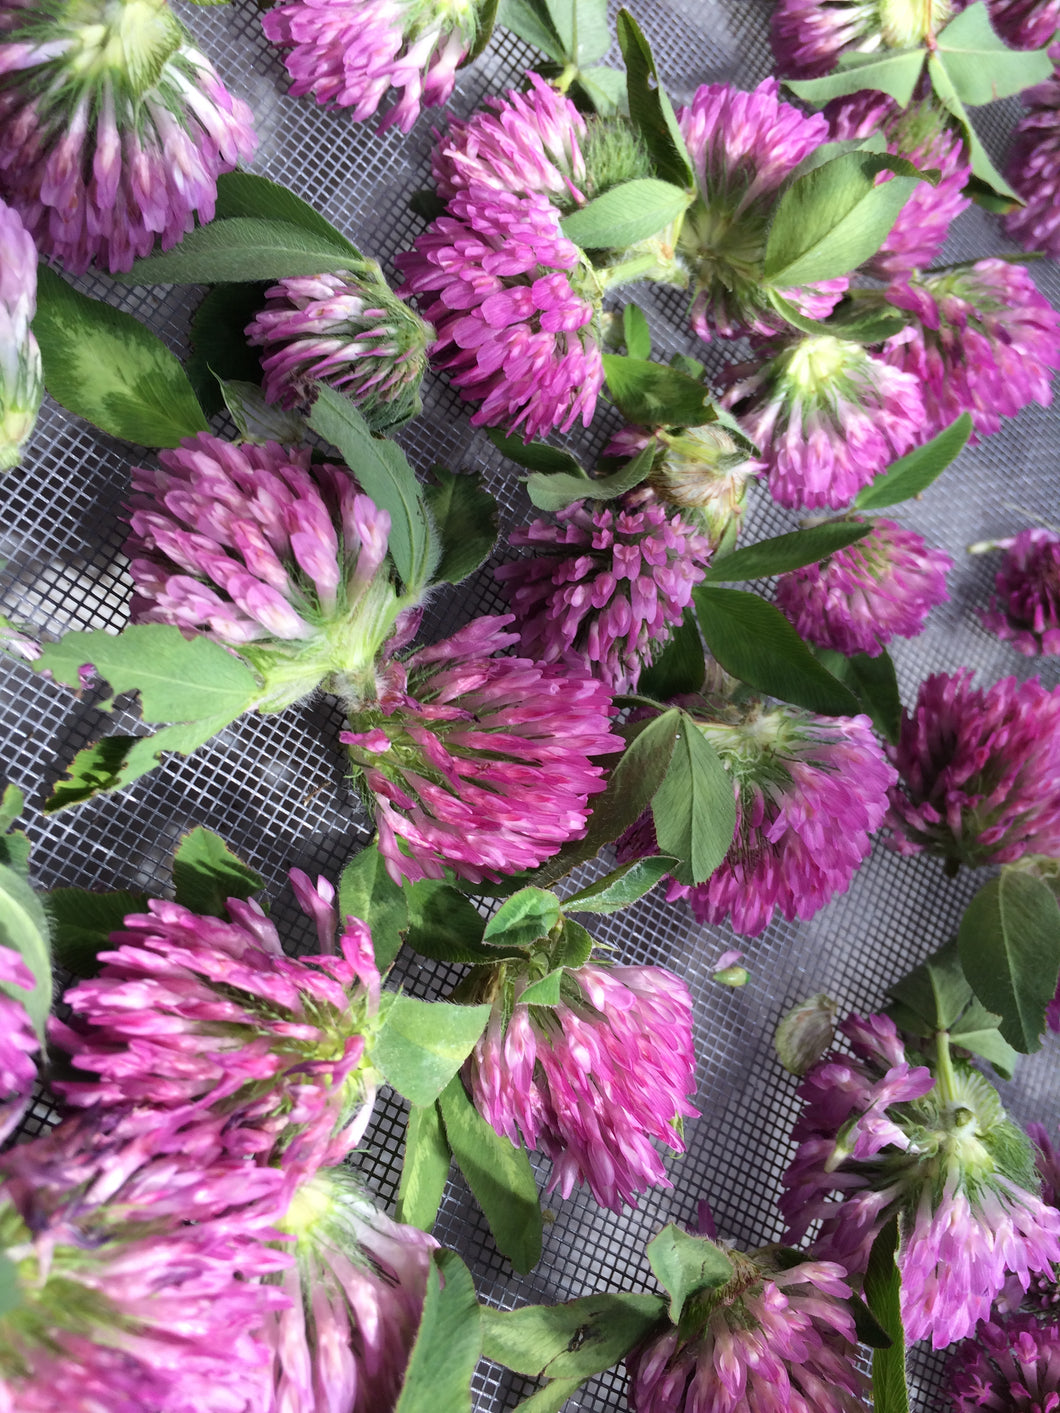 Red Clover blossoms, dried Trifolium pratense, organic